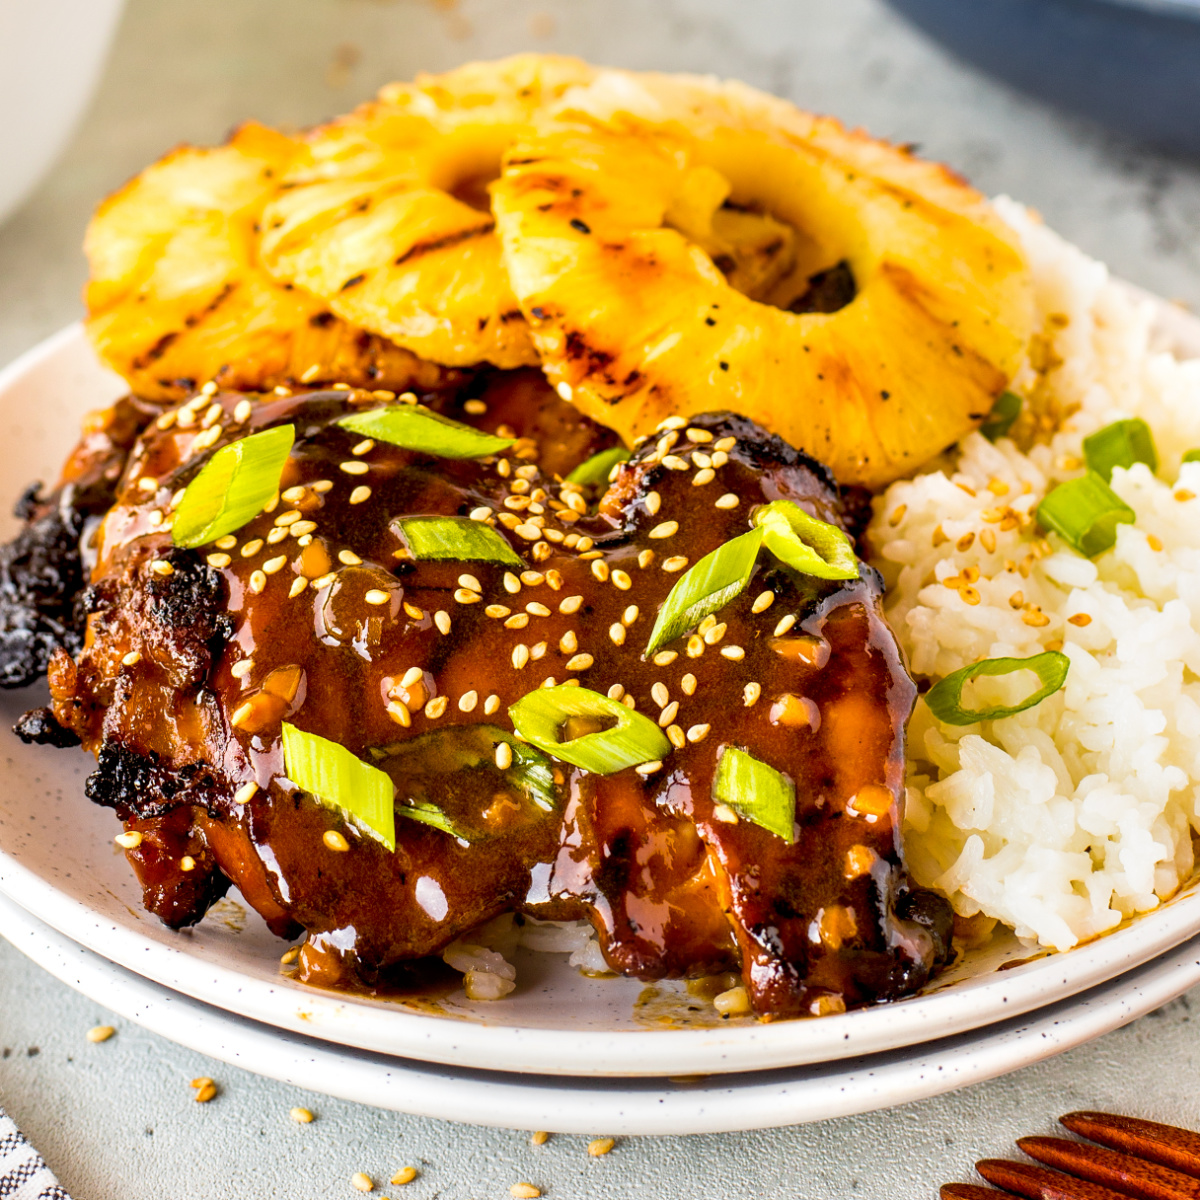 Hawaiian grilled chicken served with grilled pineapple rings and rice on a white plate